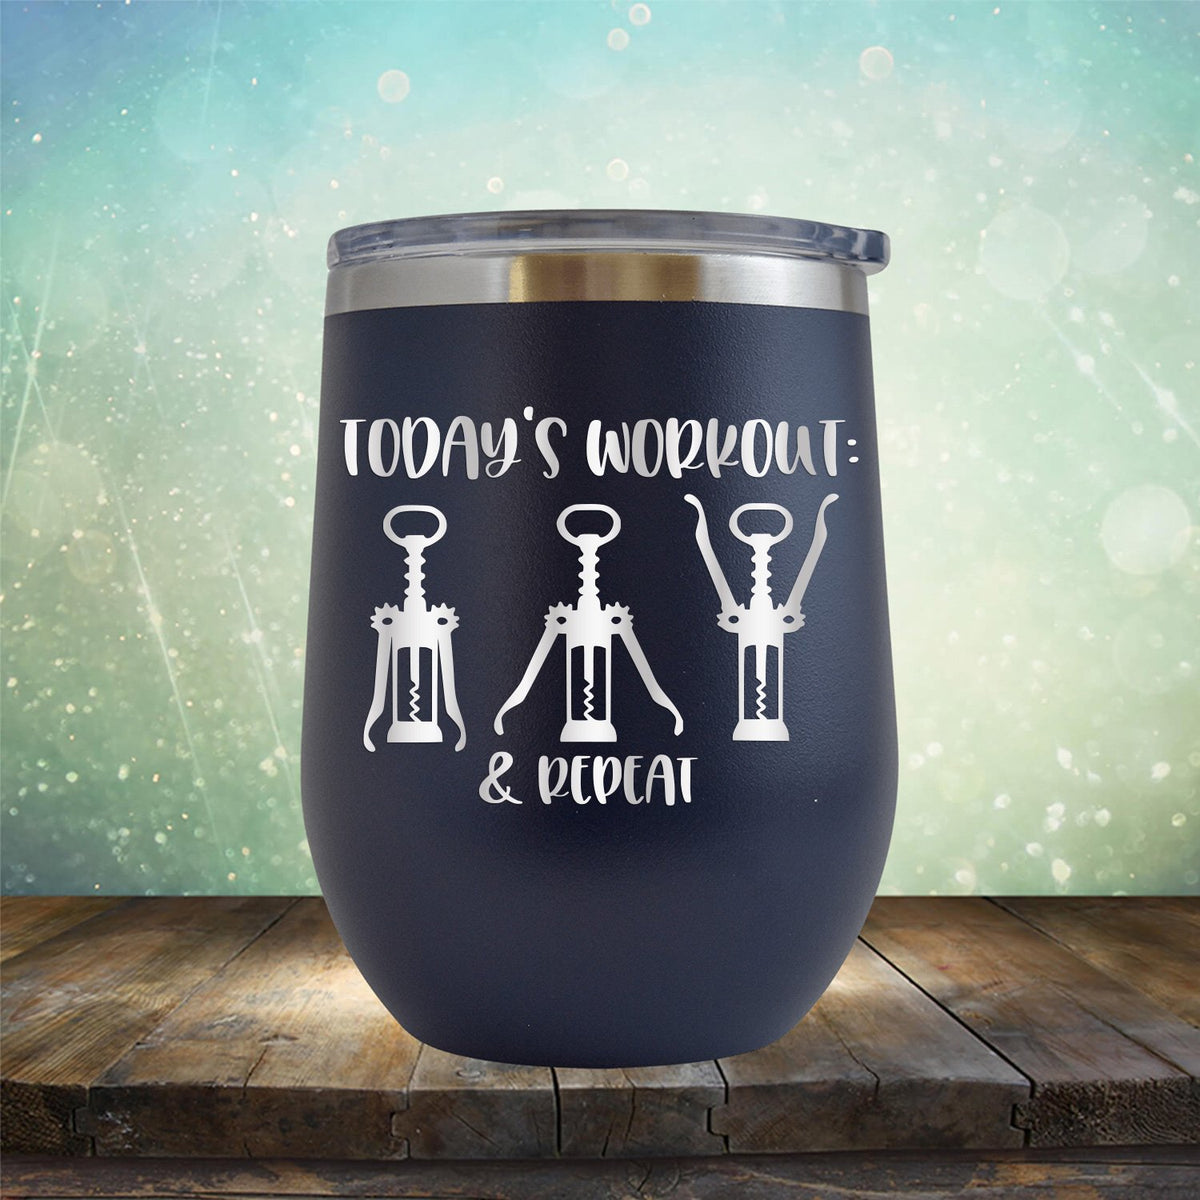 Today's Workout: Wine & Repeat - Stemless Wine Cup